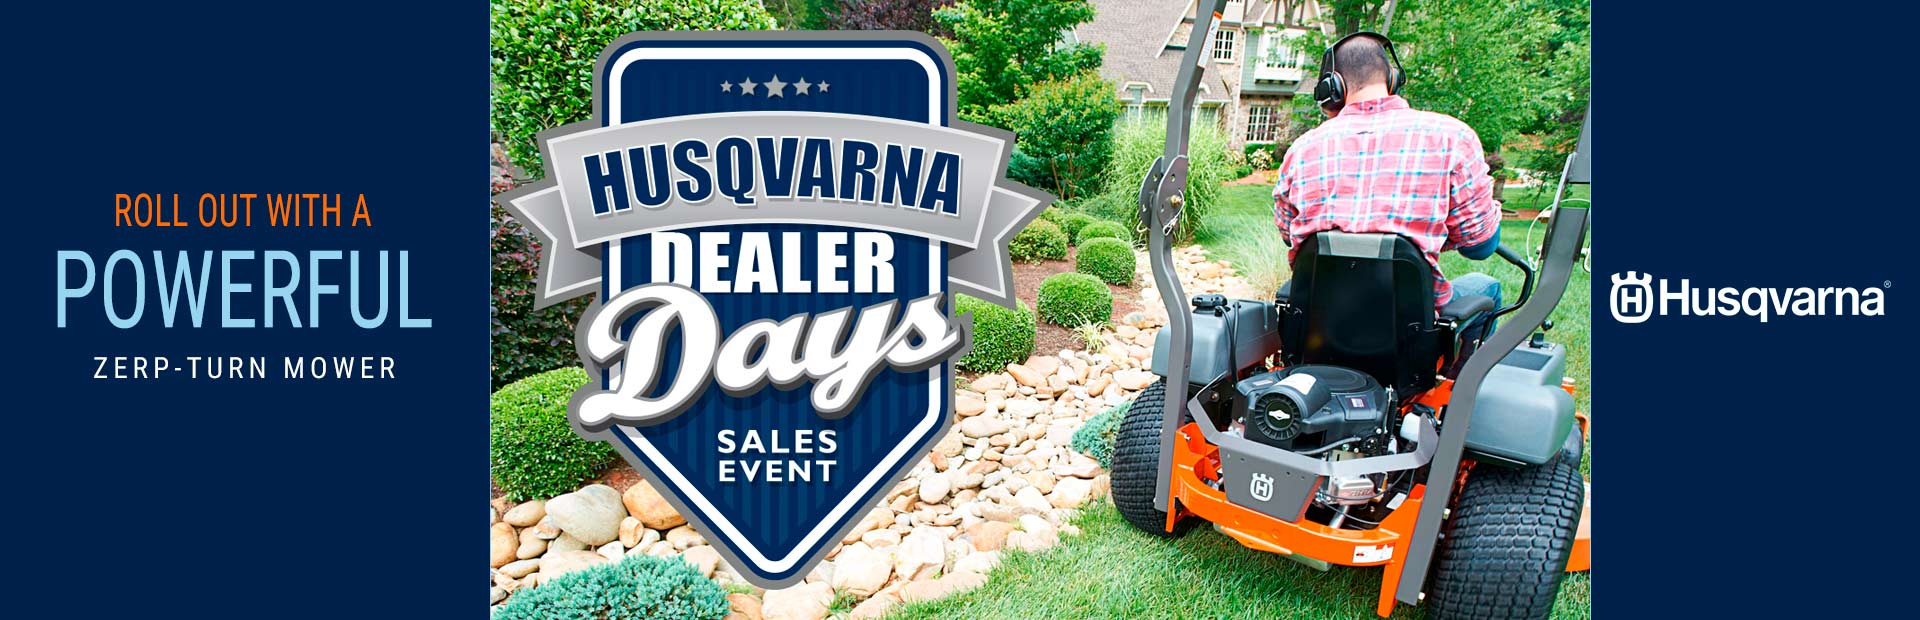 Husqvarna: Roll Out With a Powerful Zero-Turn Mower